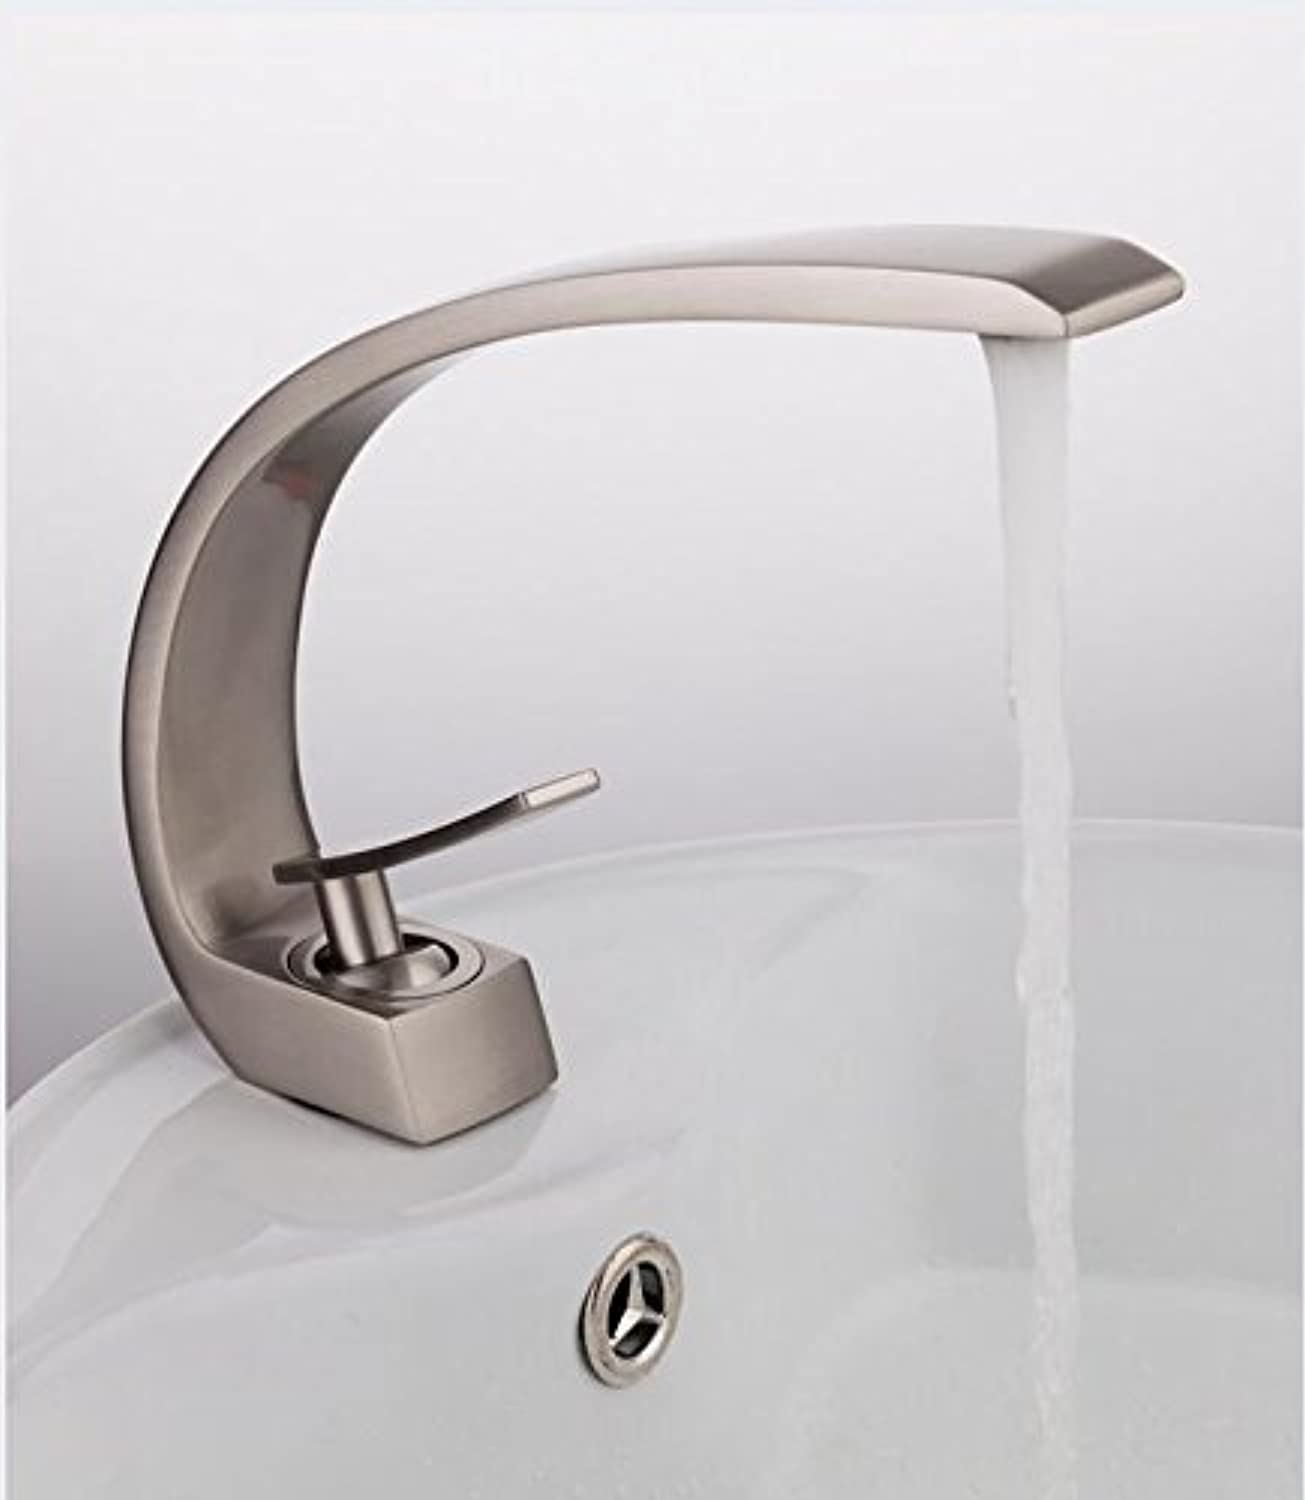 Makej New Brass Bath Basin Faucet Brush Nickel Sink Mixer Tap Vanity Hot and Cold Water Taps Bathroom Faucets